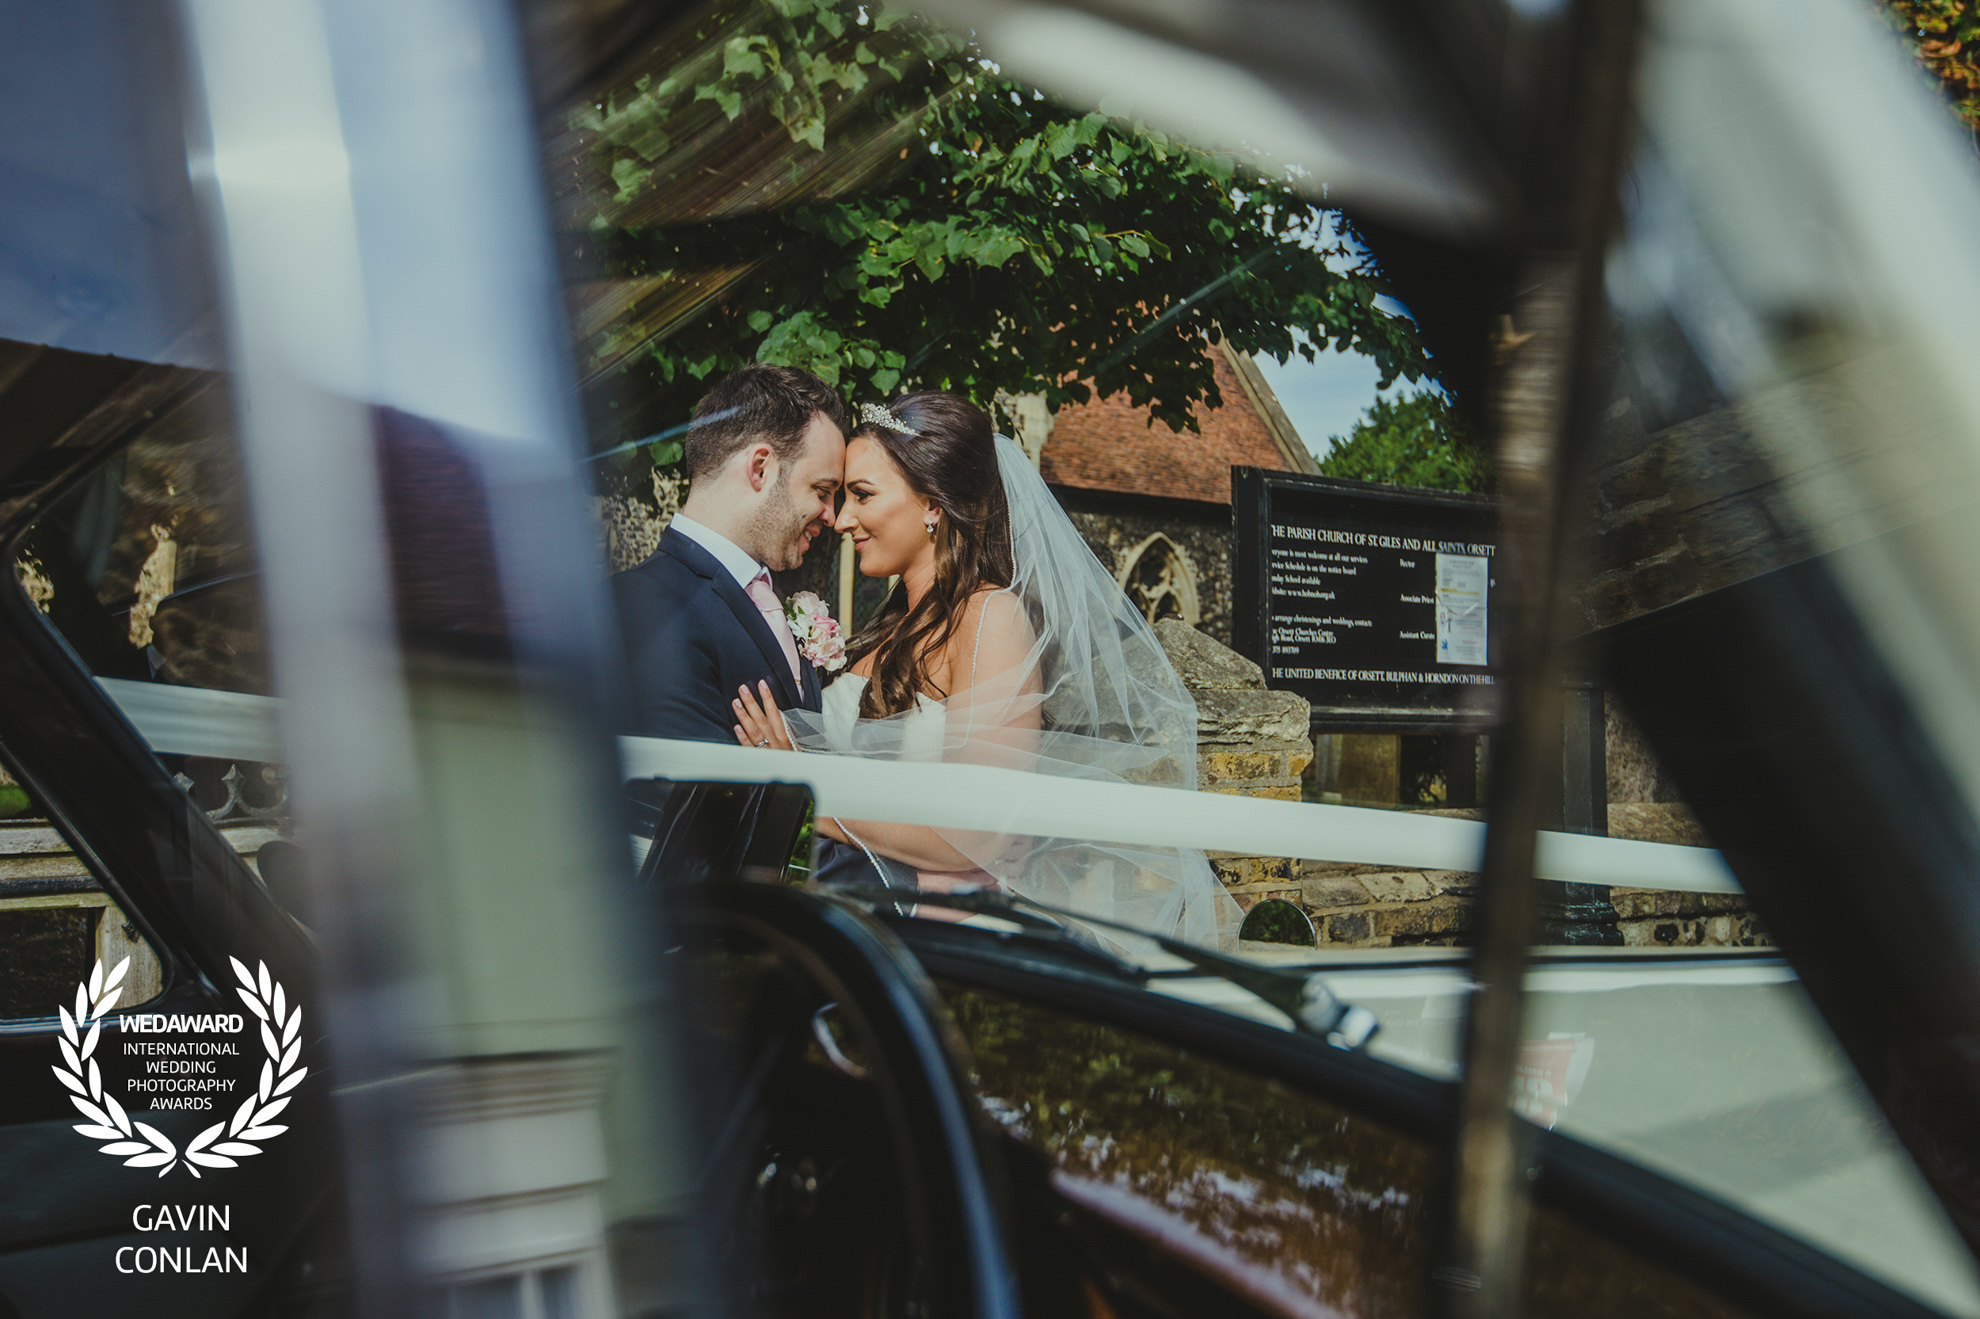 wedding-portrait-all-saints-church-friern-manor-essex-gavin-conlan-photography-wedaward